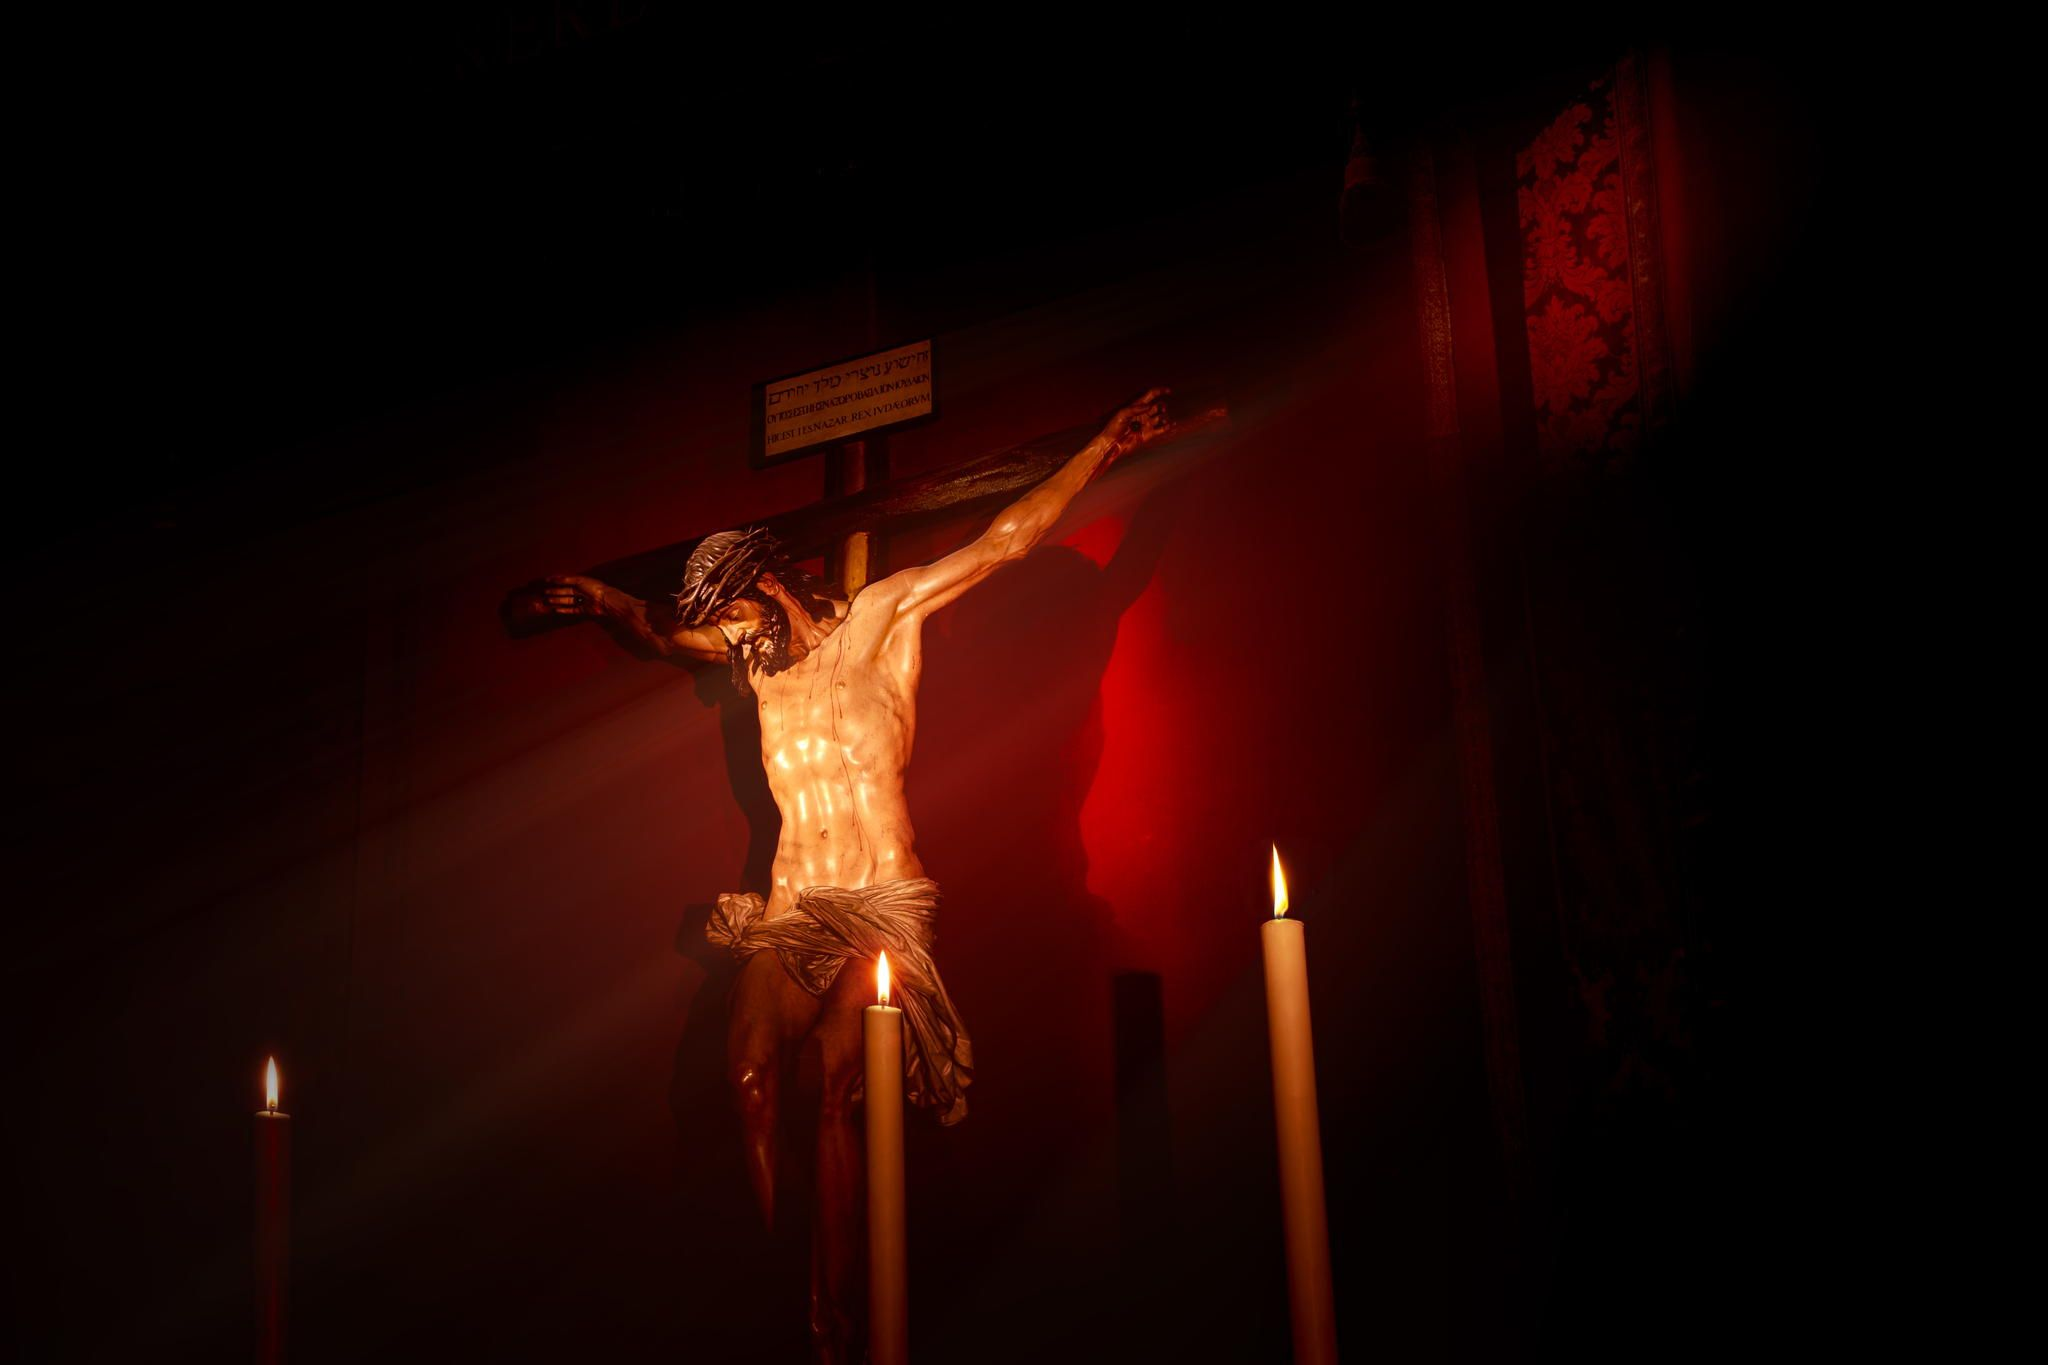 Photograph Red Christ by Luis Dias on 500px